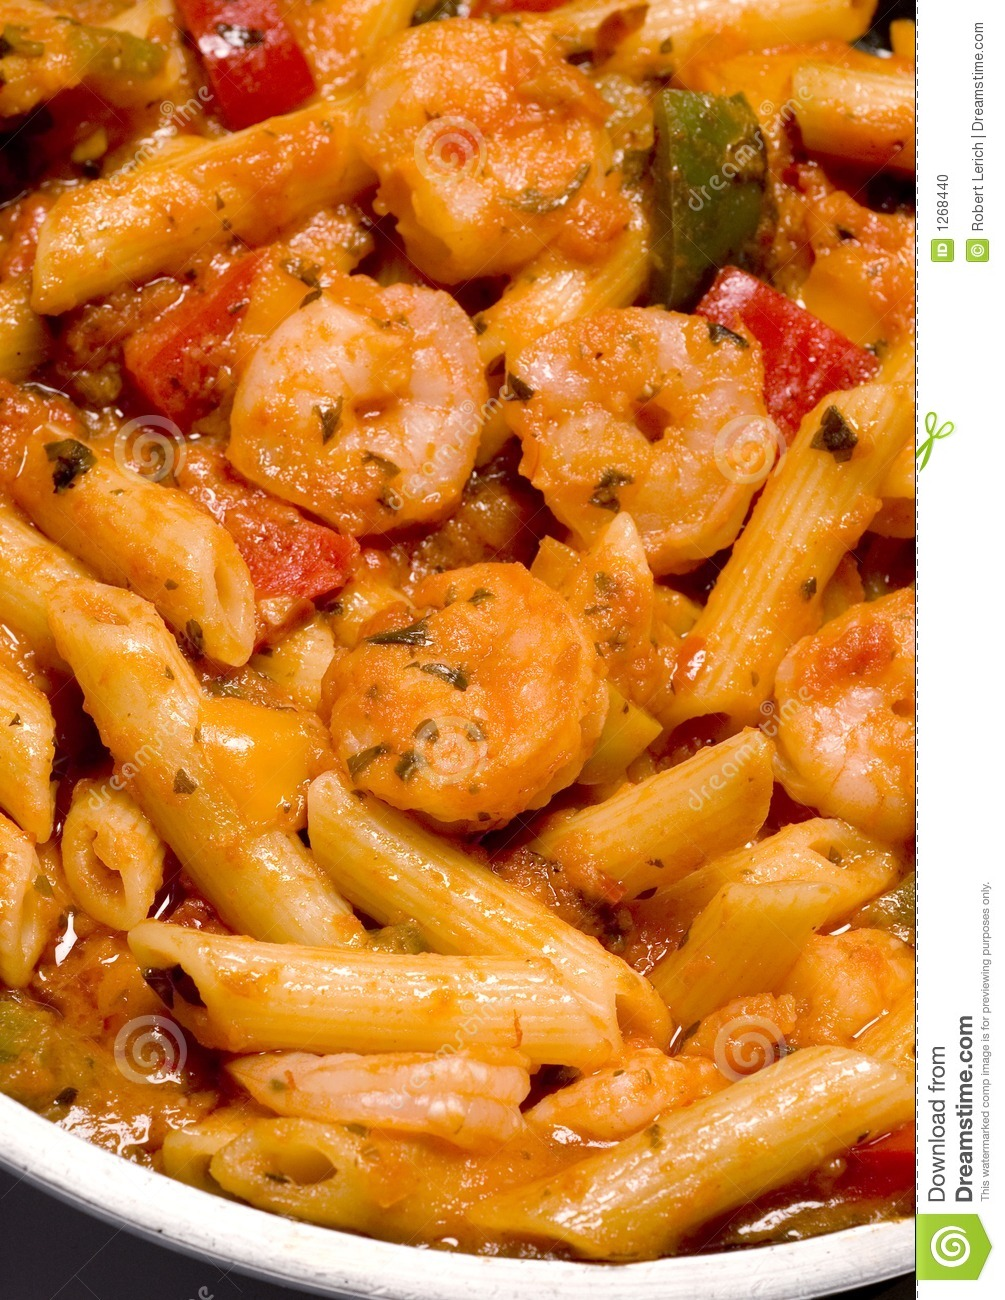 Spicy shrimp fra diavolo and penne pasta.